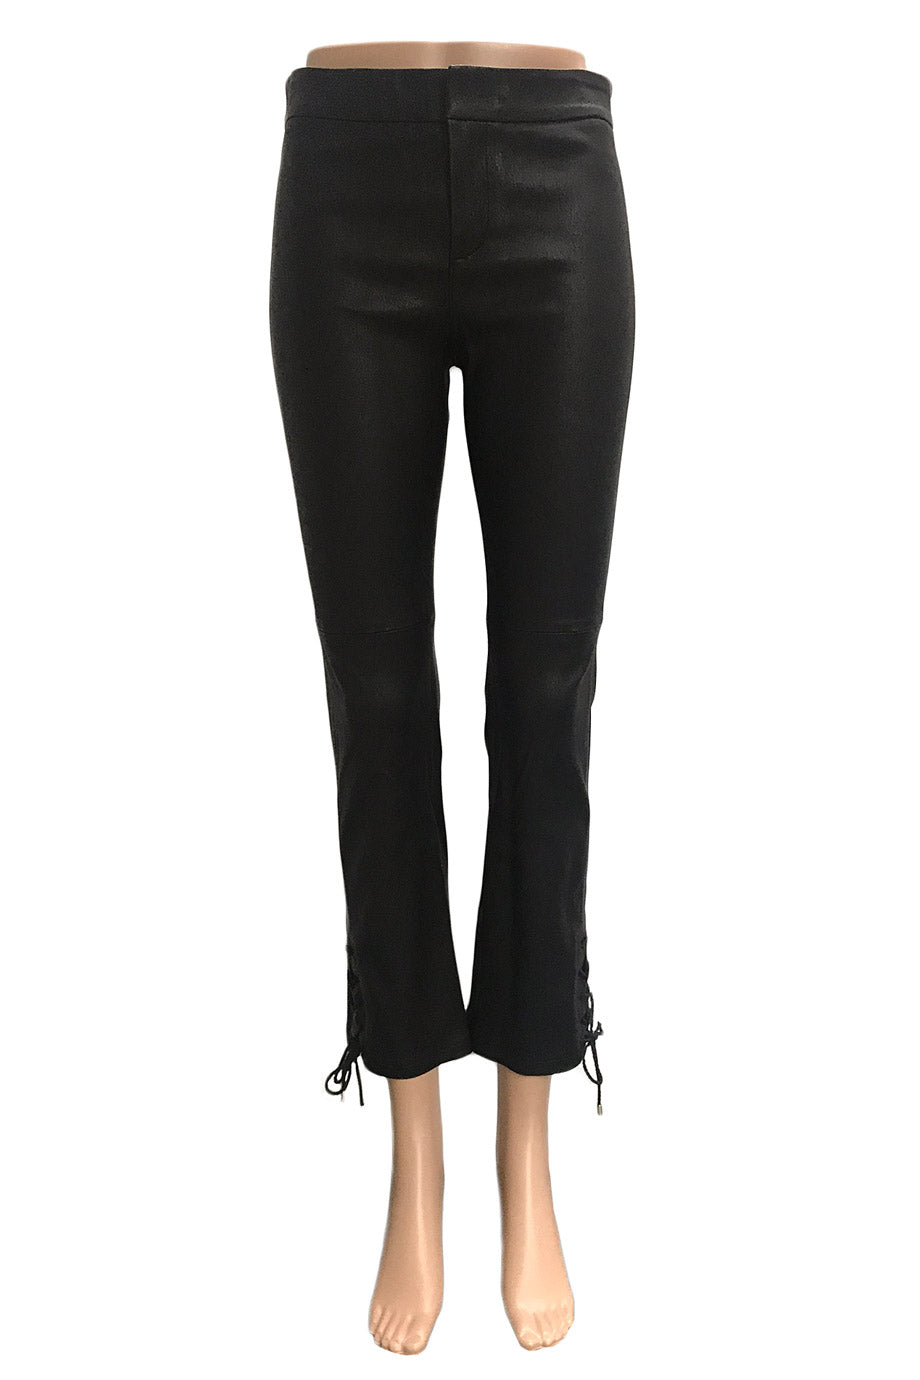 Hellessy Black Stretch Leather Cropped Pants + Lace-Up Details / Sz 4-Style Therapy